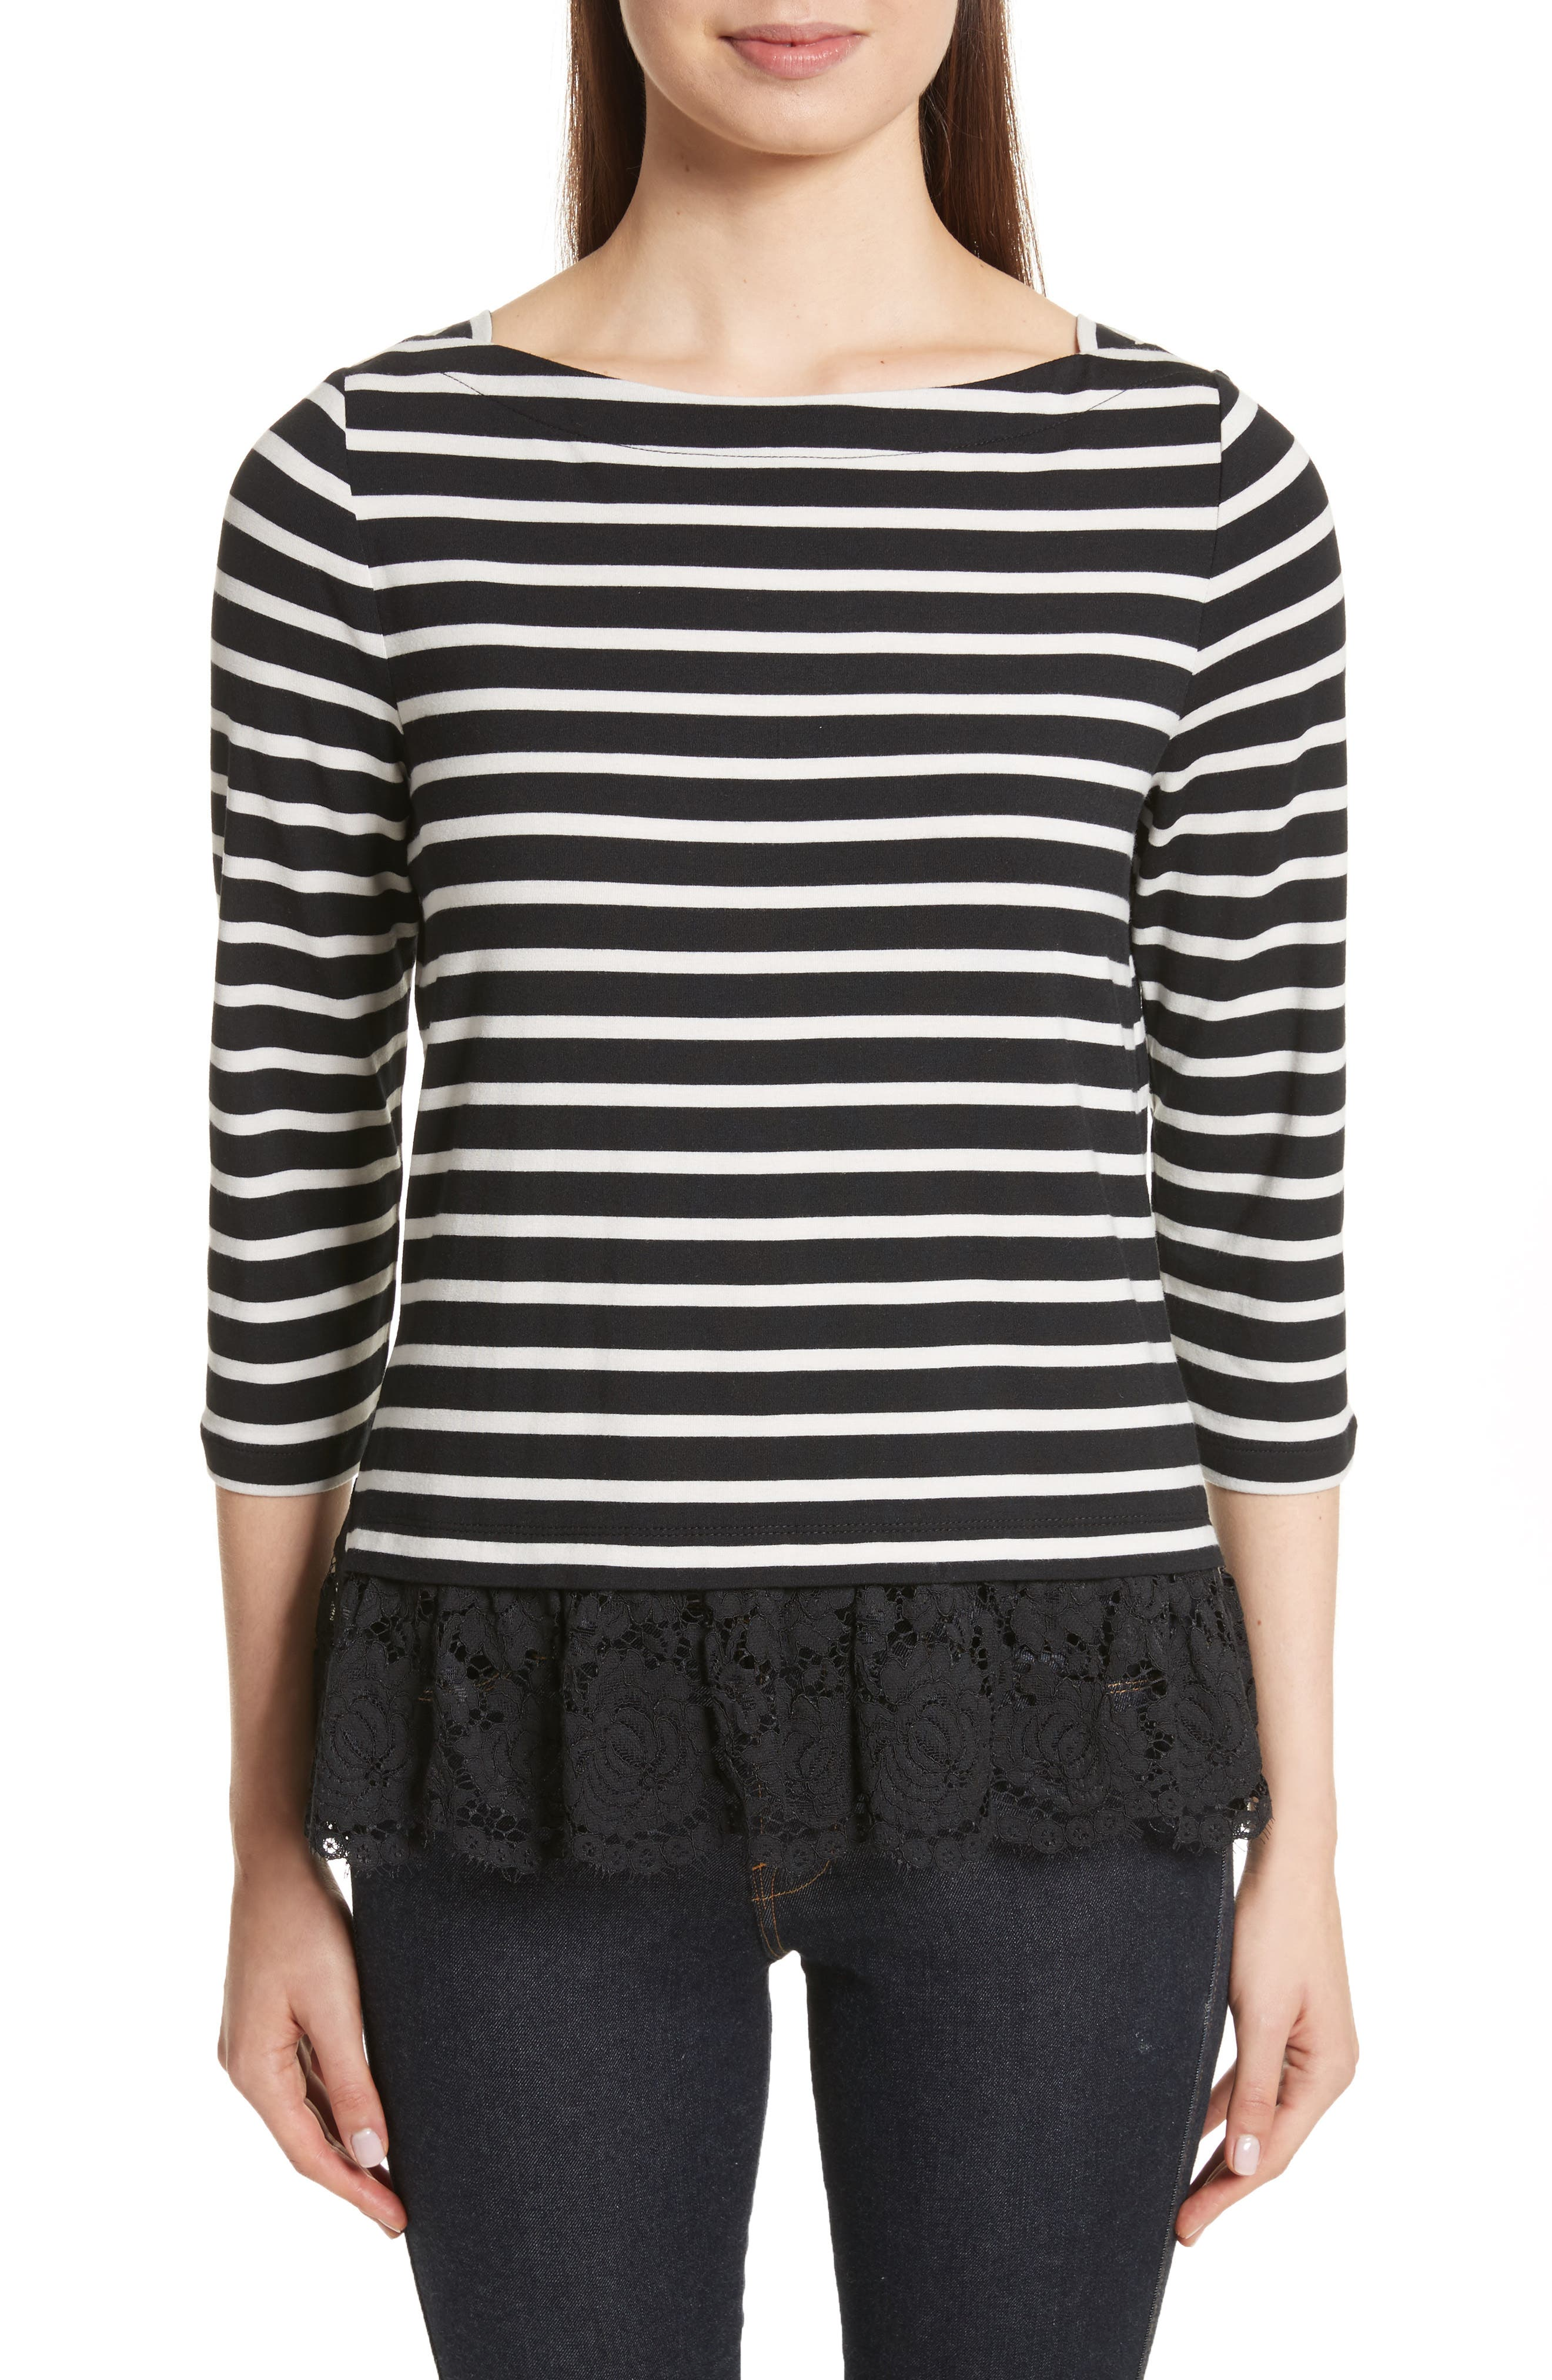 Alternate Image 1 Selected - kate spade lace flounce stripe top